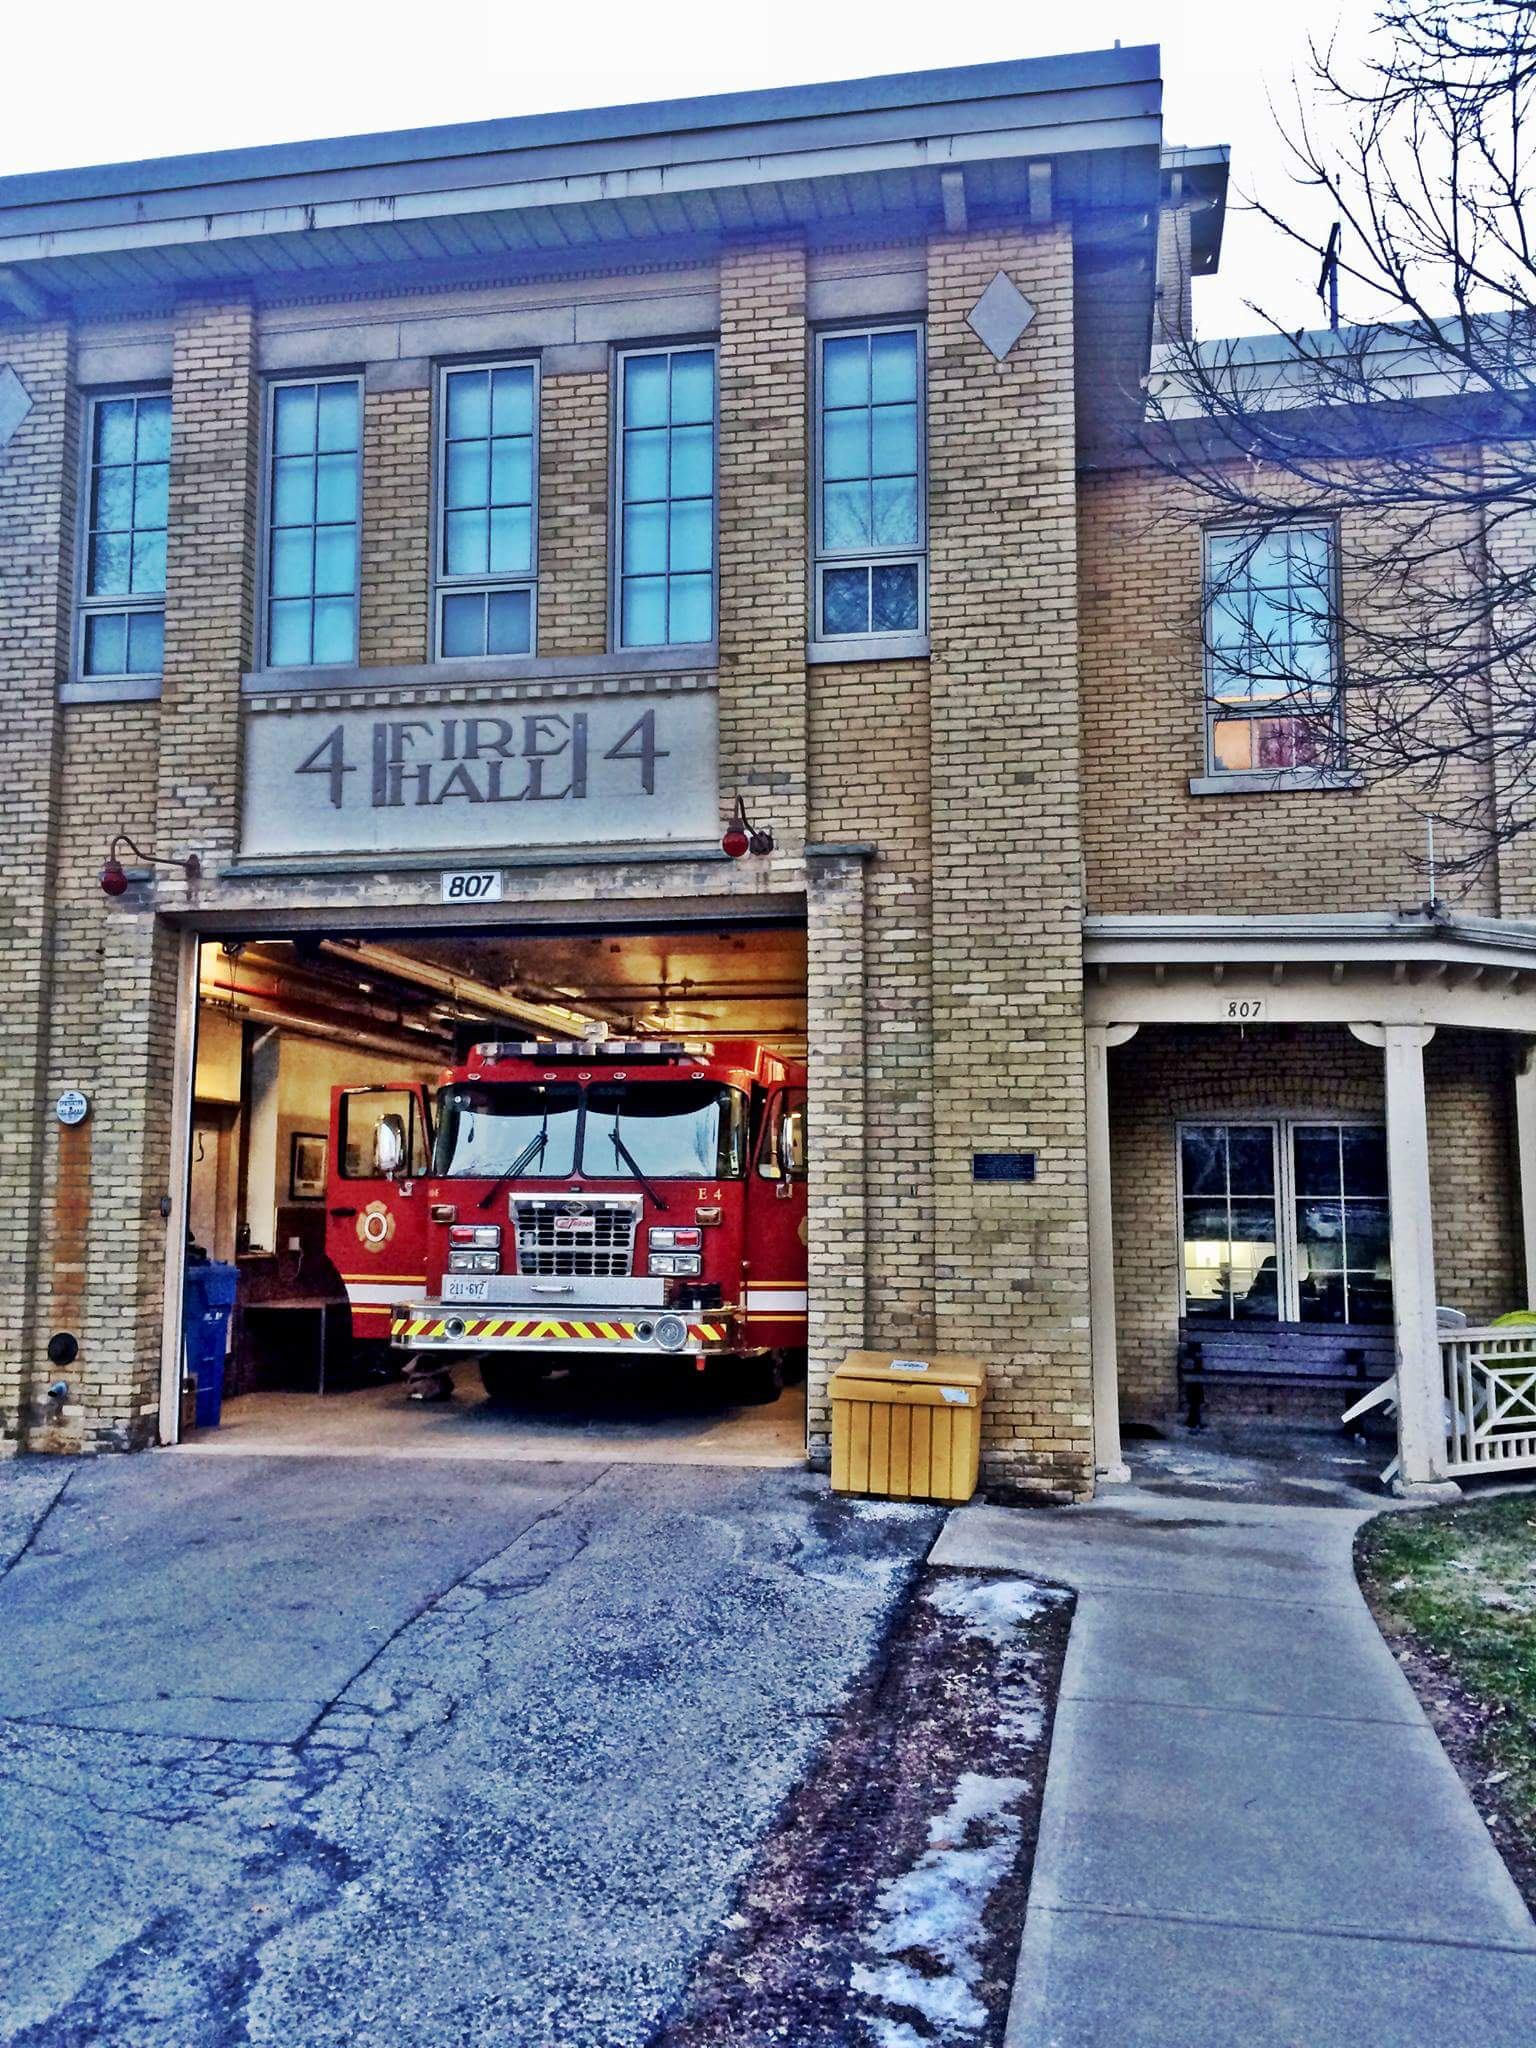 Station 4 with the bay door open and engine four on display